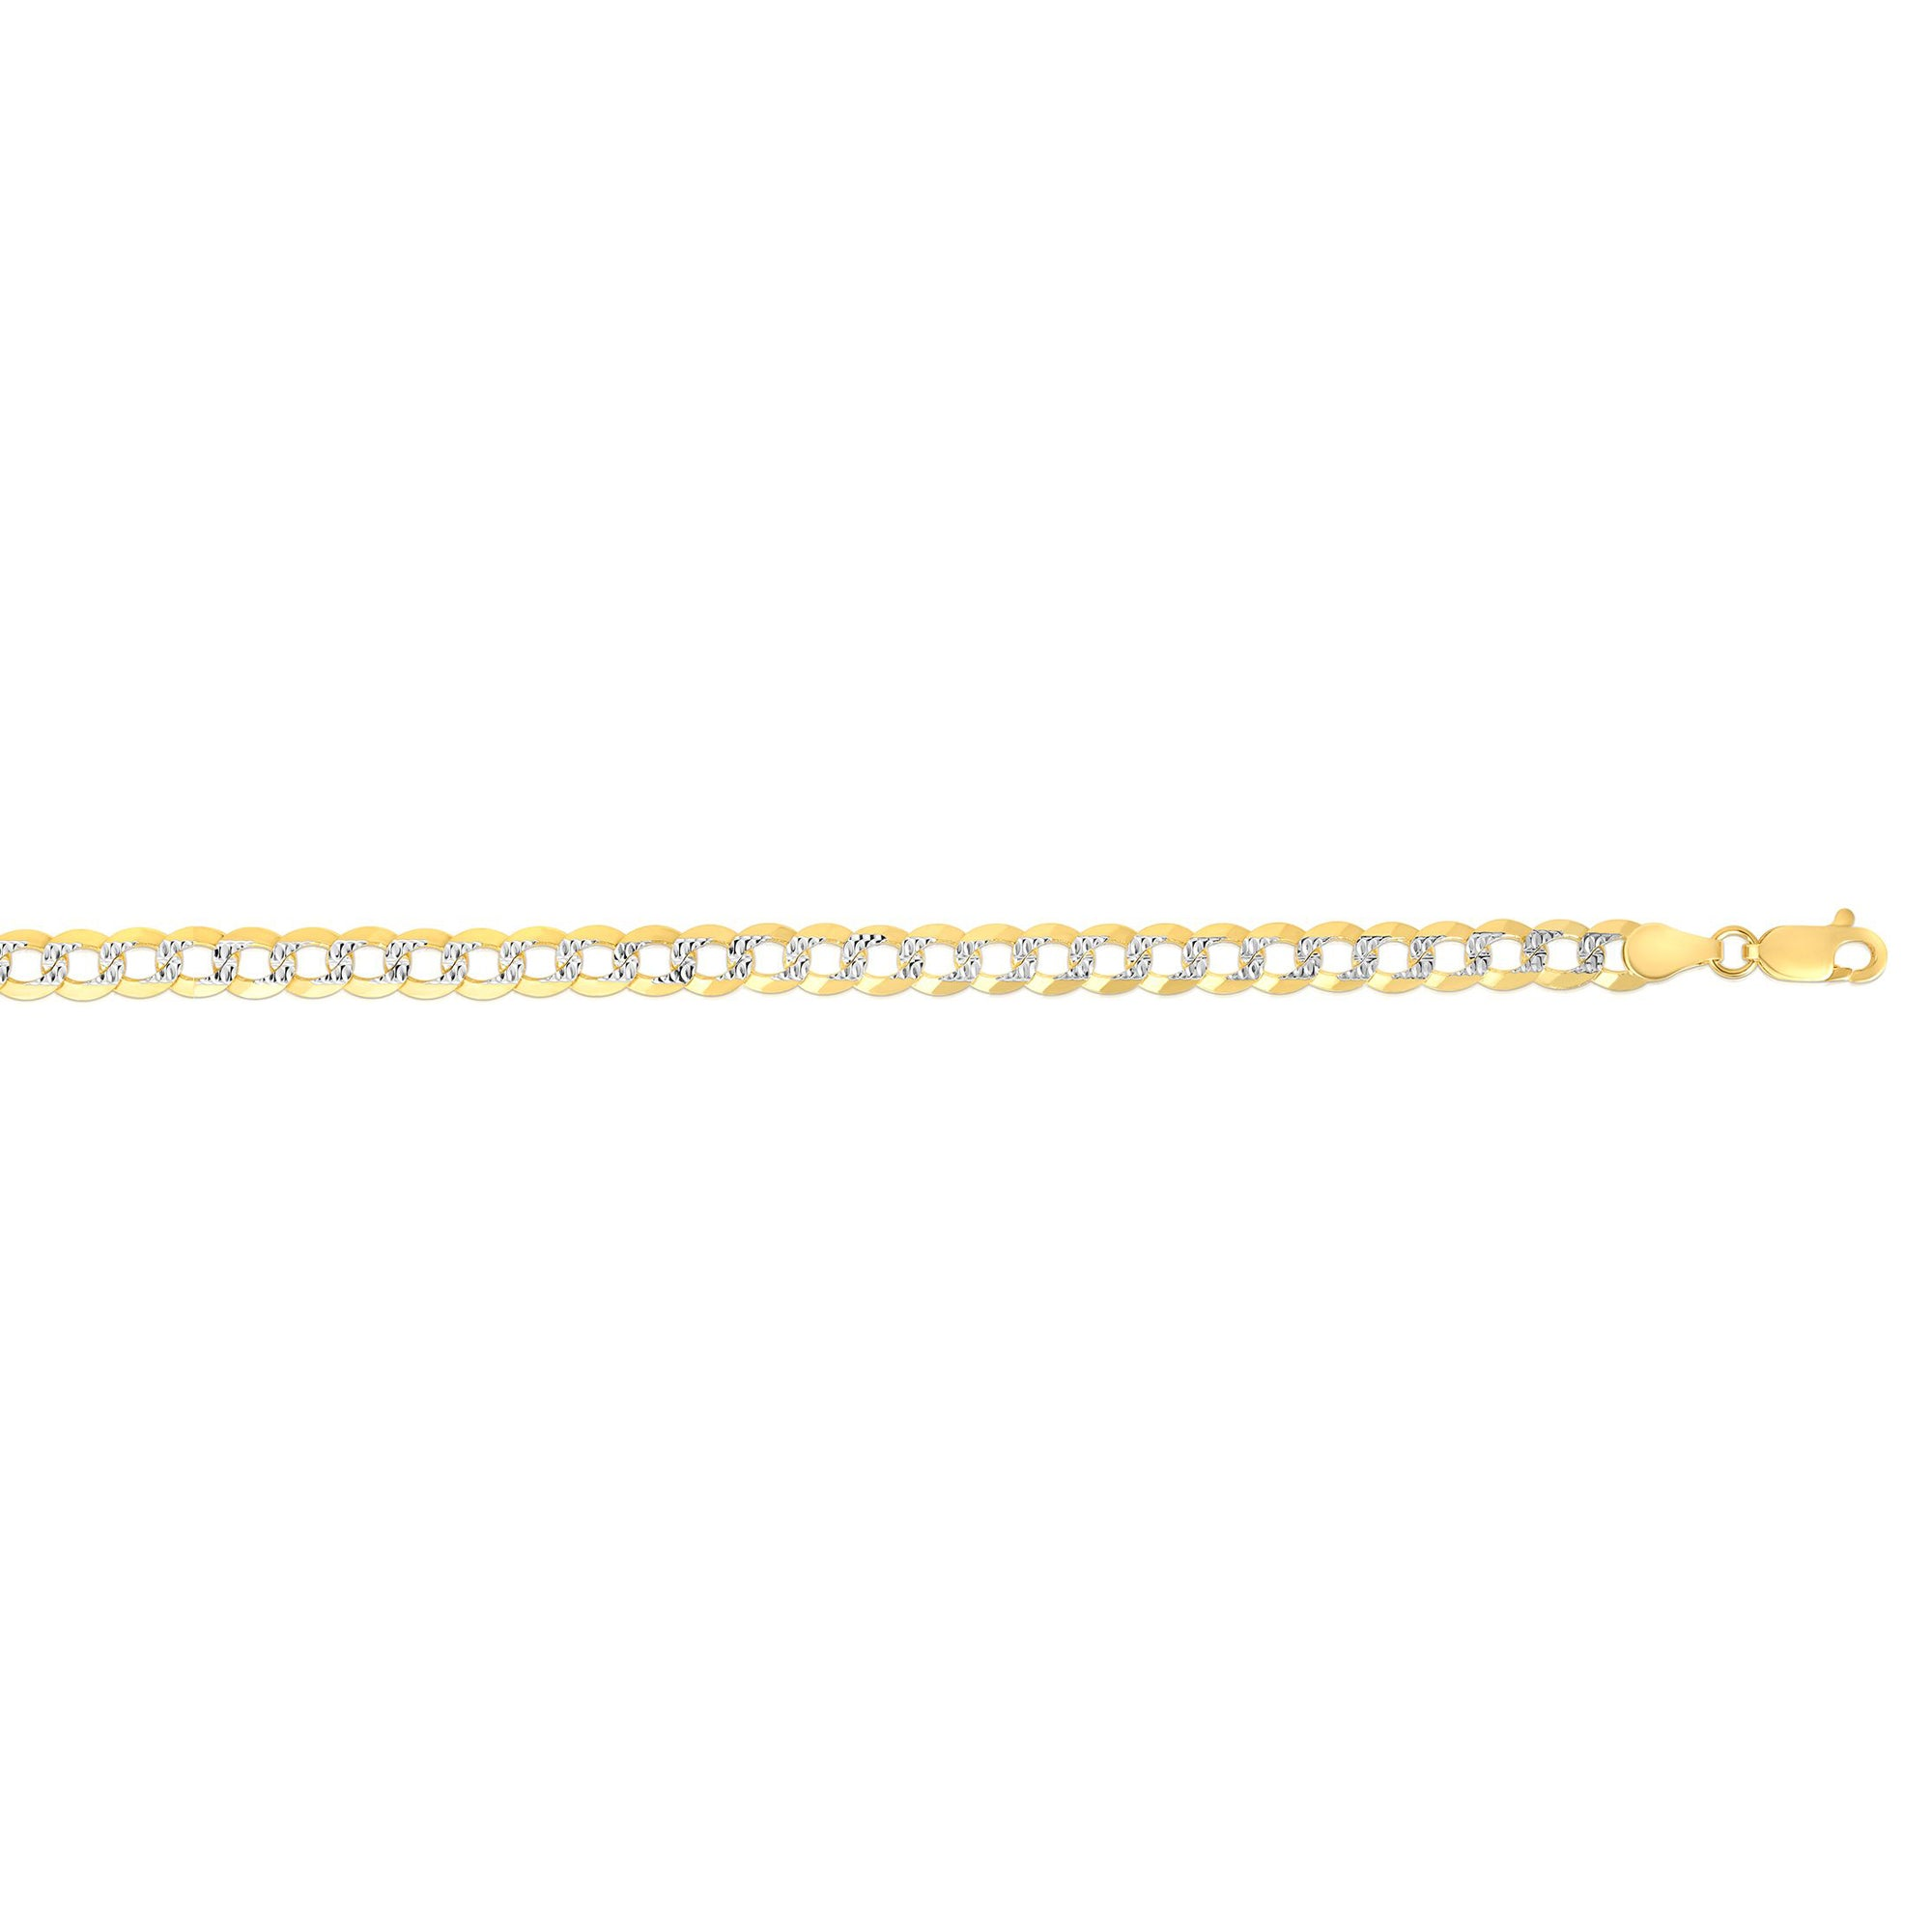 14K Gold 3.6mm White Pave Curb Chain